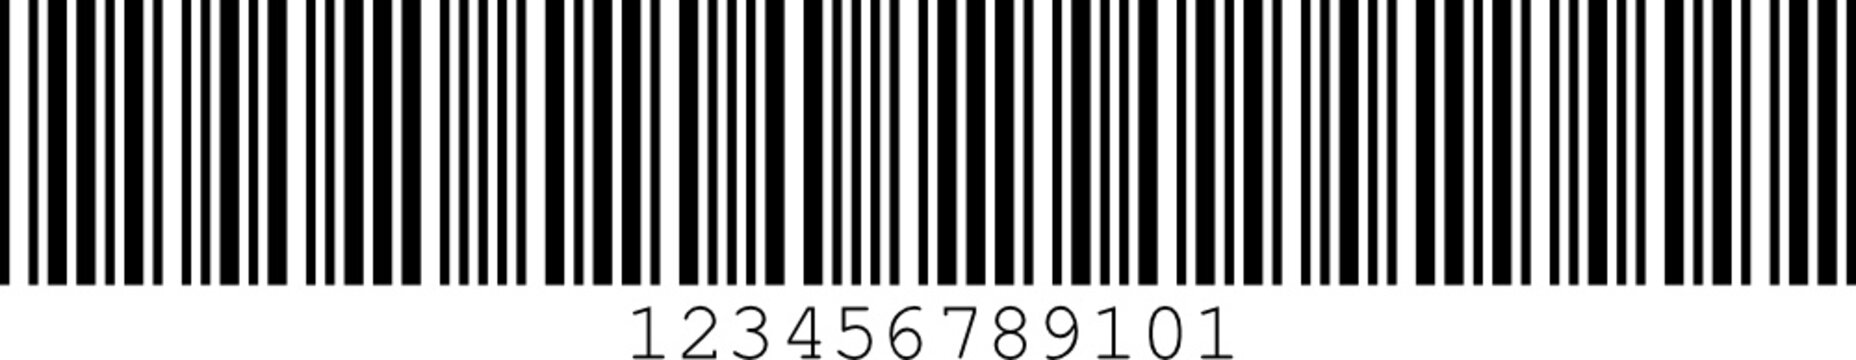 Code 39 Include Checksum Barcode Standard